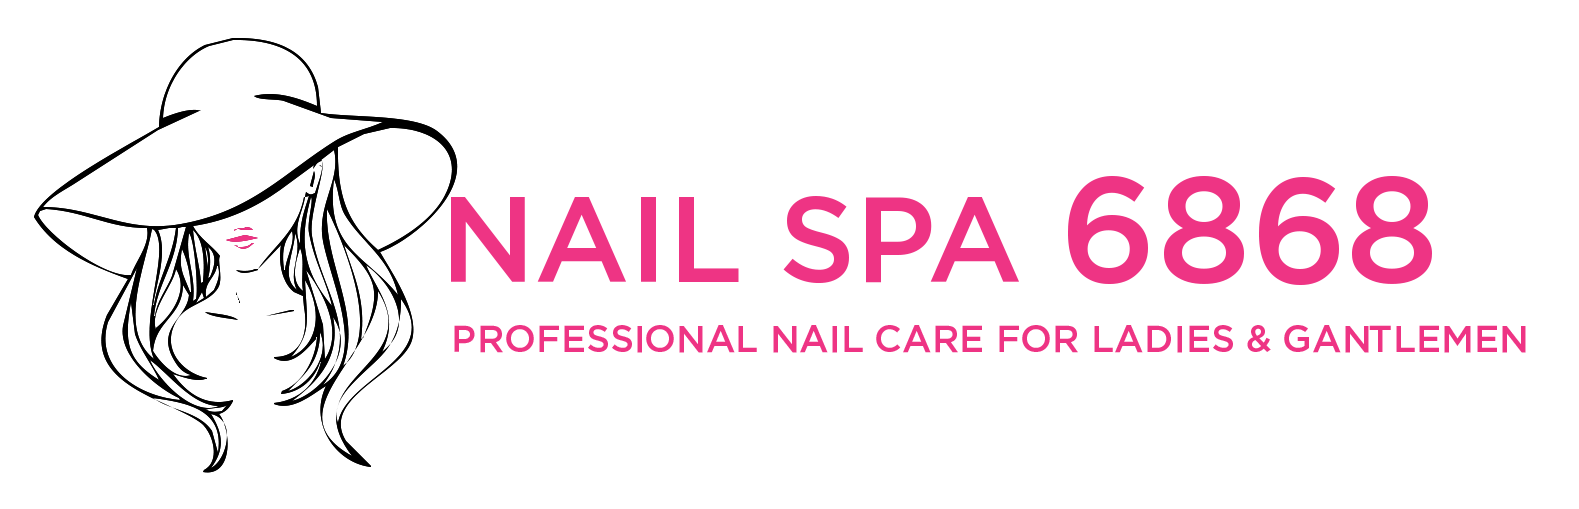 Nailspa6868 - What is the difference between shellac and gel nails? - nail salon near me Cambridge